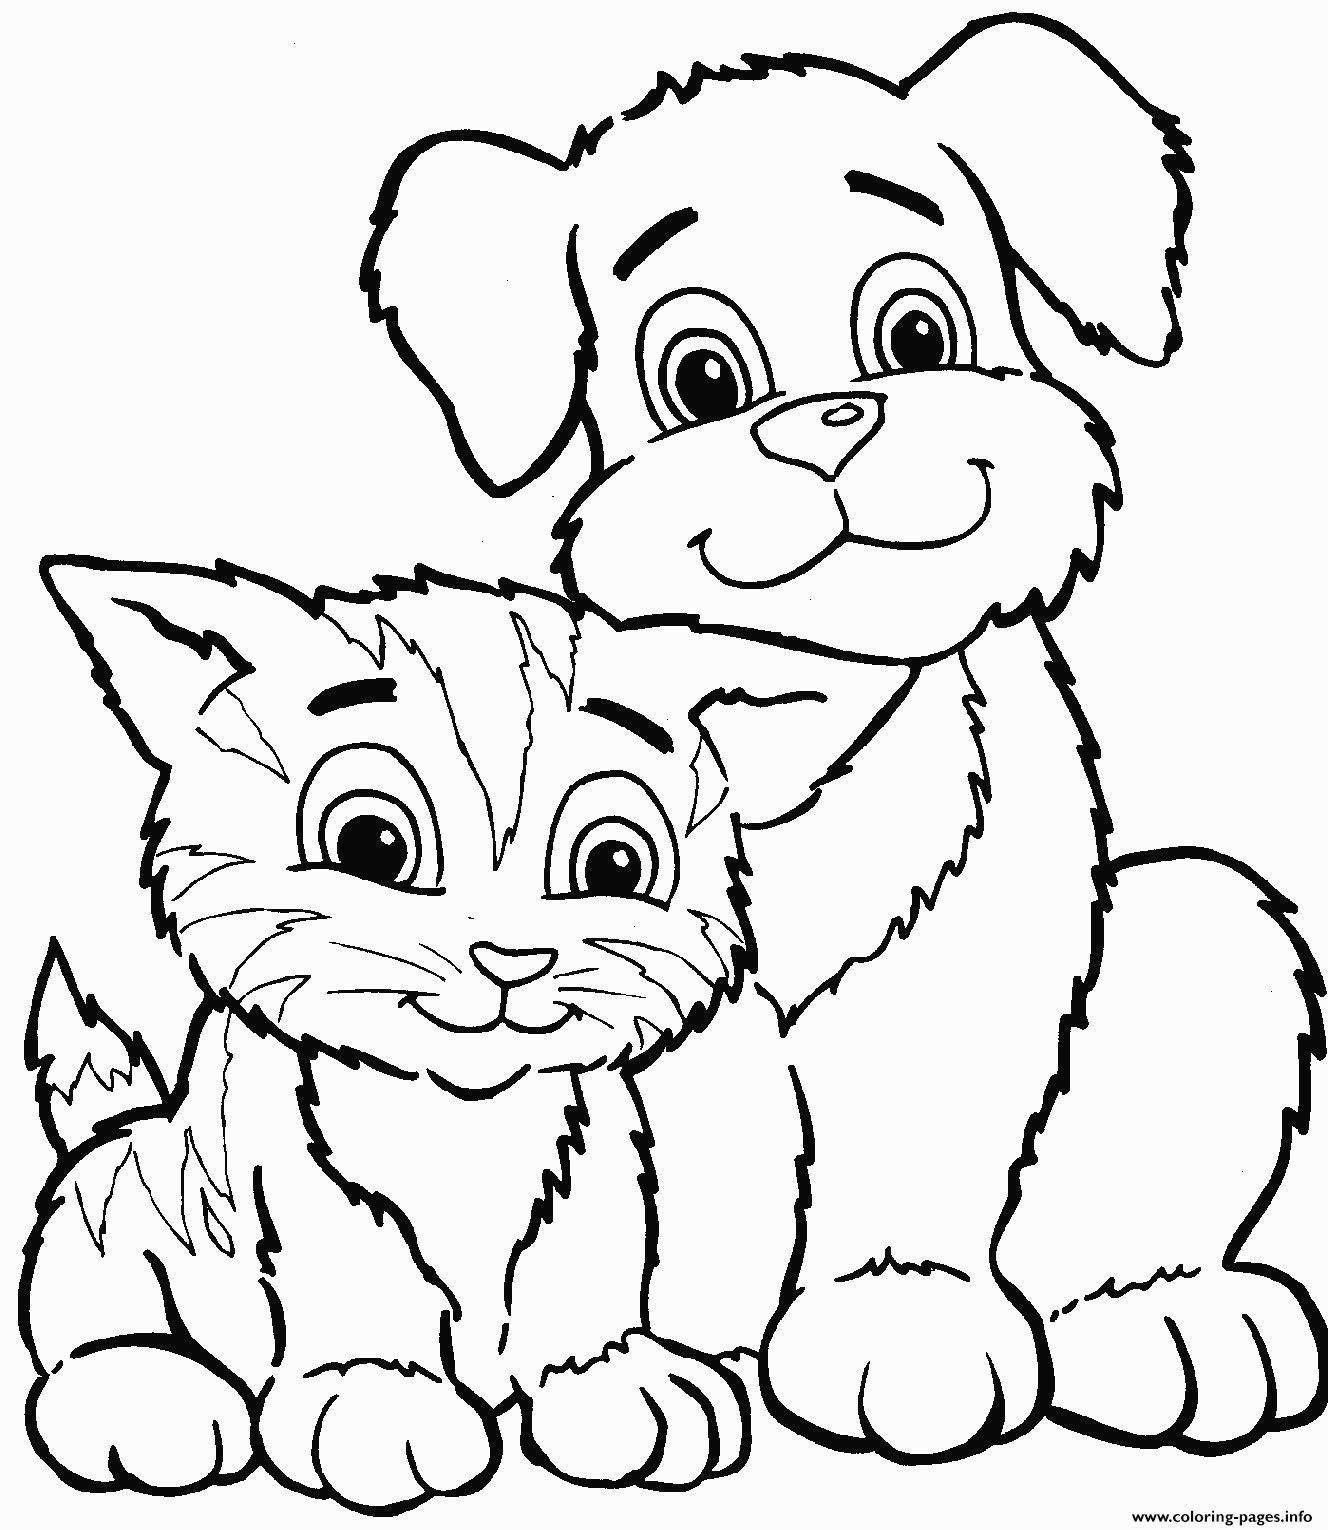 Cat Coloring Pages for Adults Awesome Warrior Cats Coloring Pages